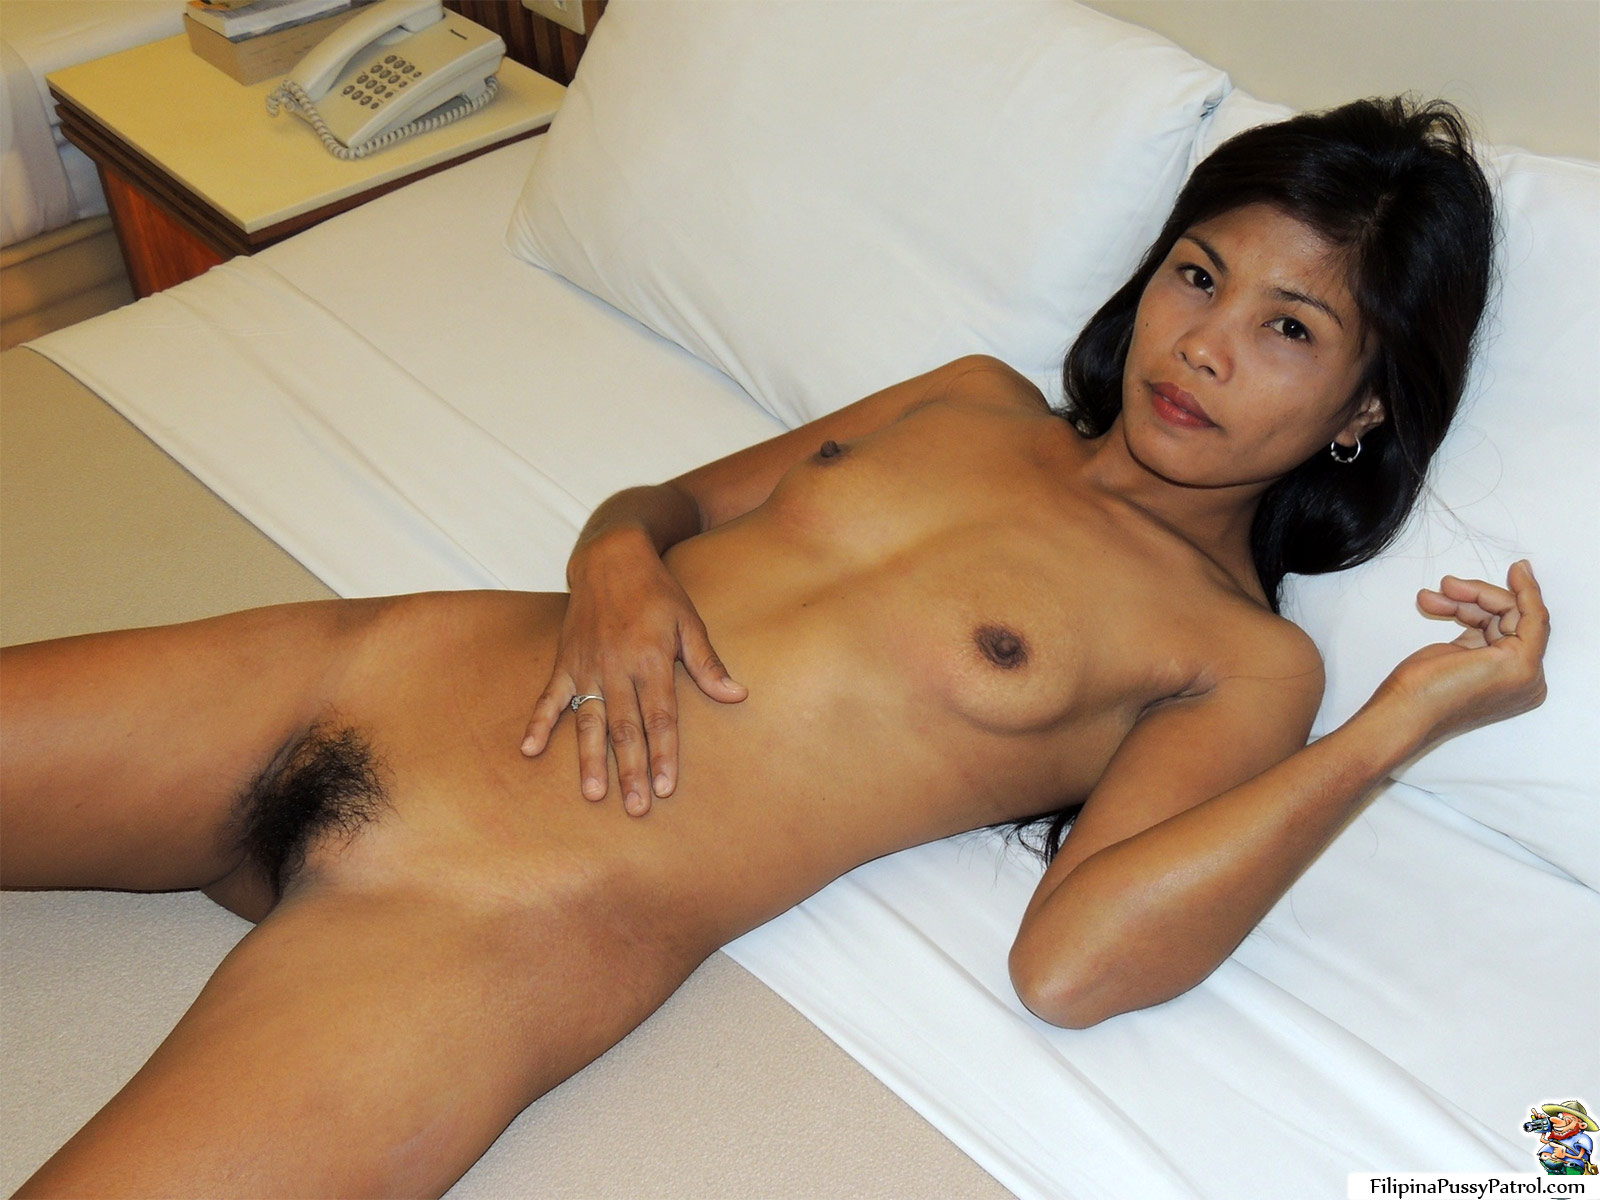 Naked filipina pussy absolutely useless